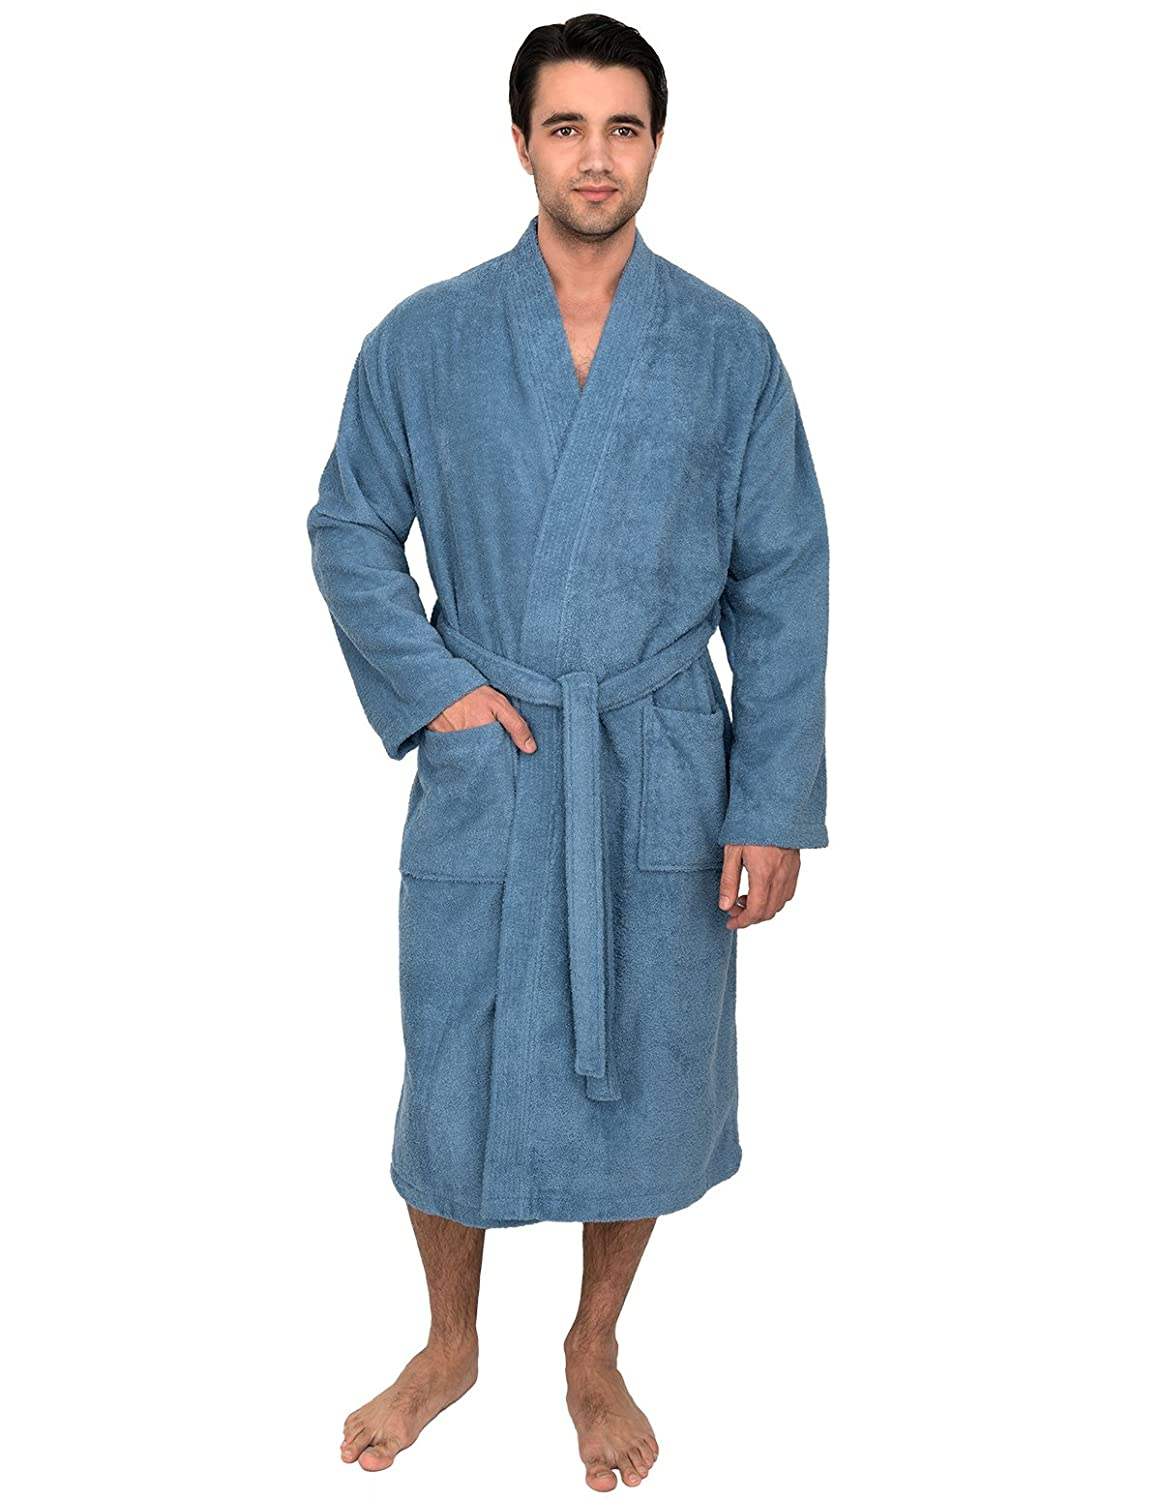 TowelSelections Men's Turkish Cotton Bathrobe Terry Kimono Robe Made in Turkey